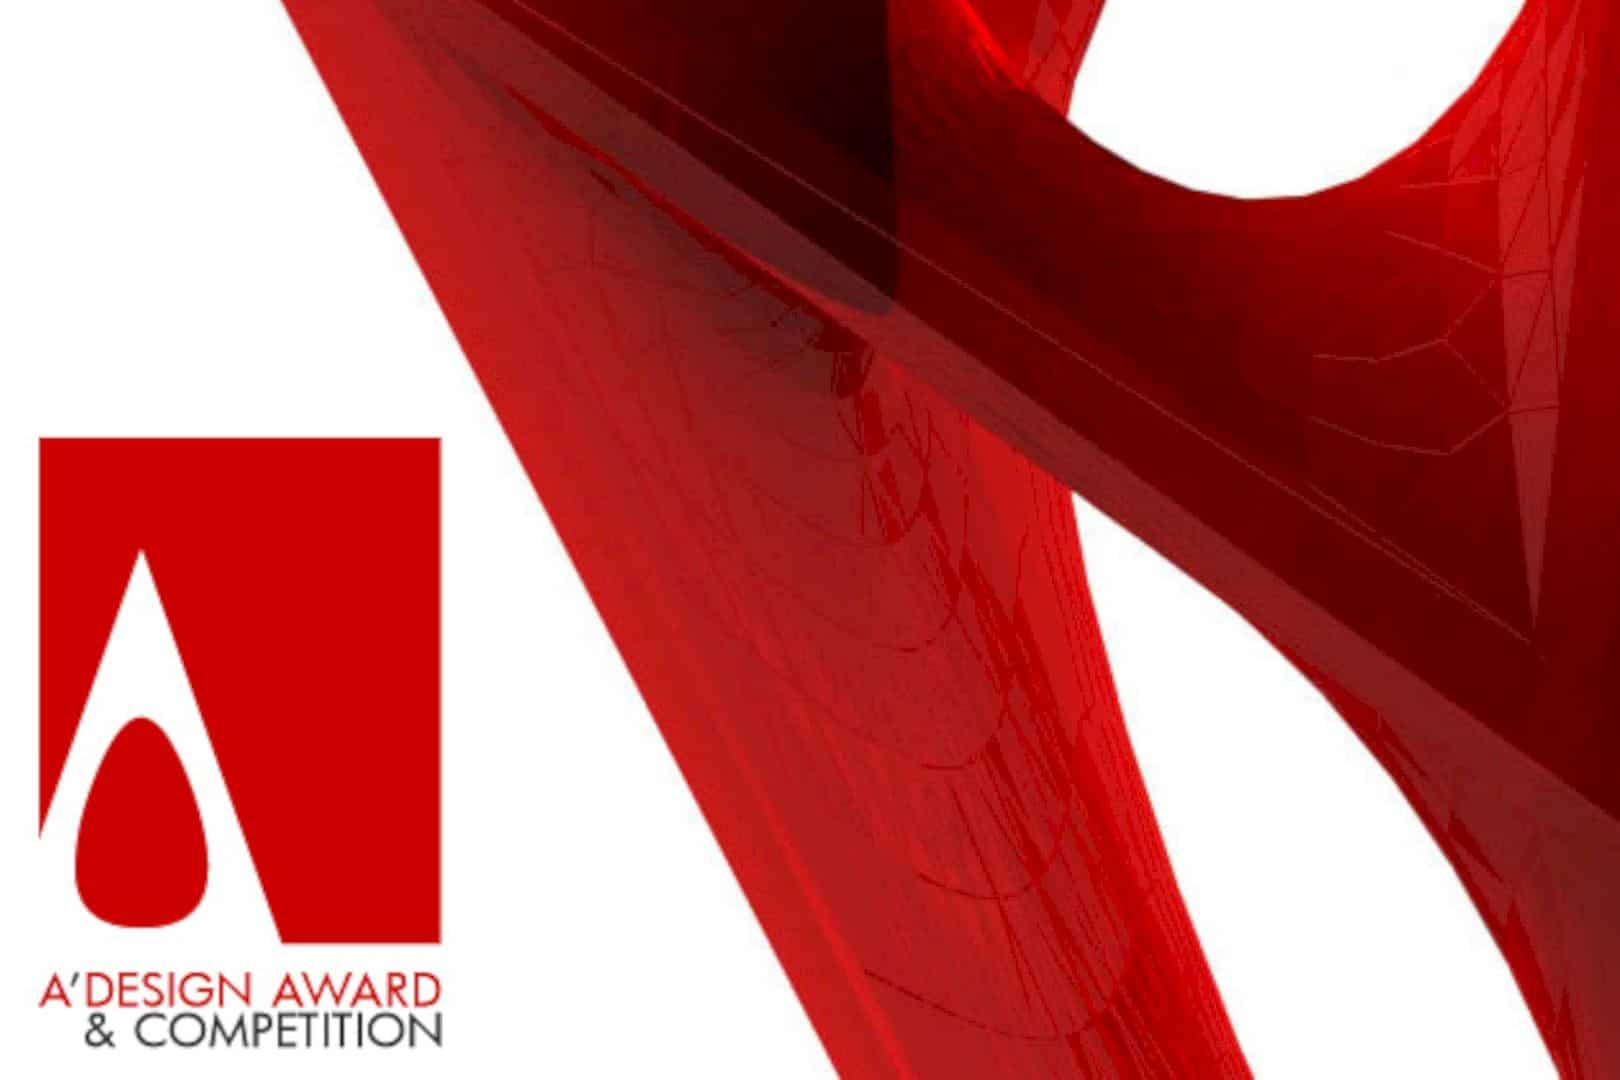 A Design Award & Competition 2